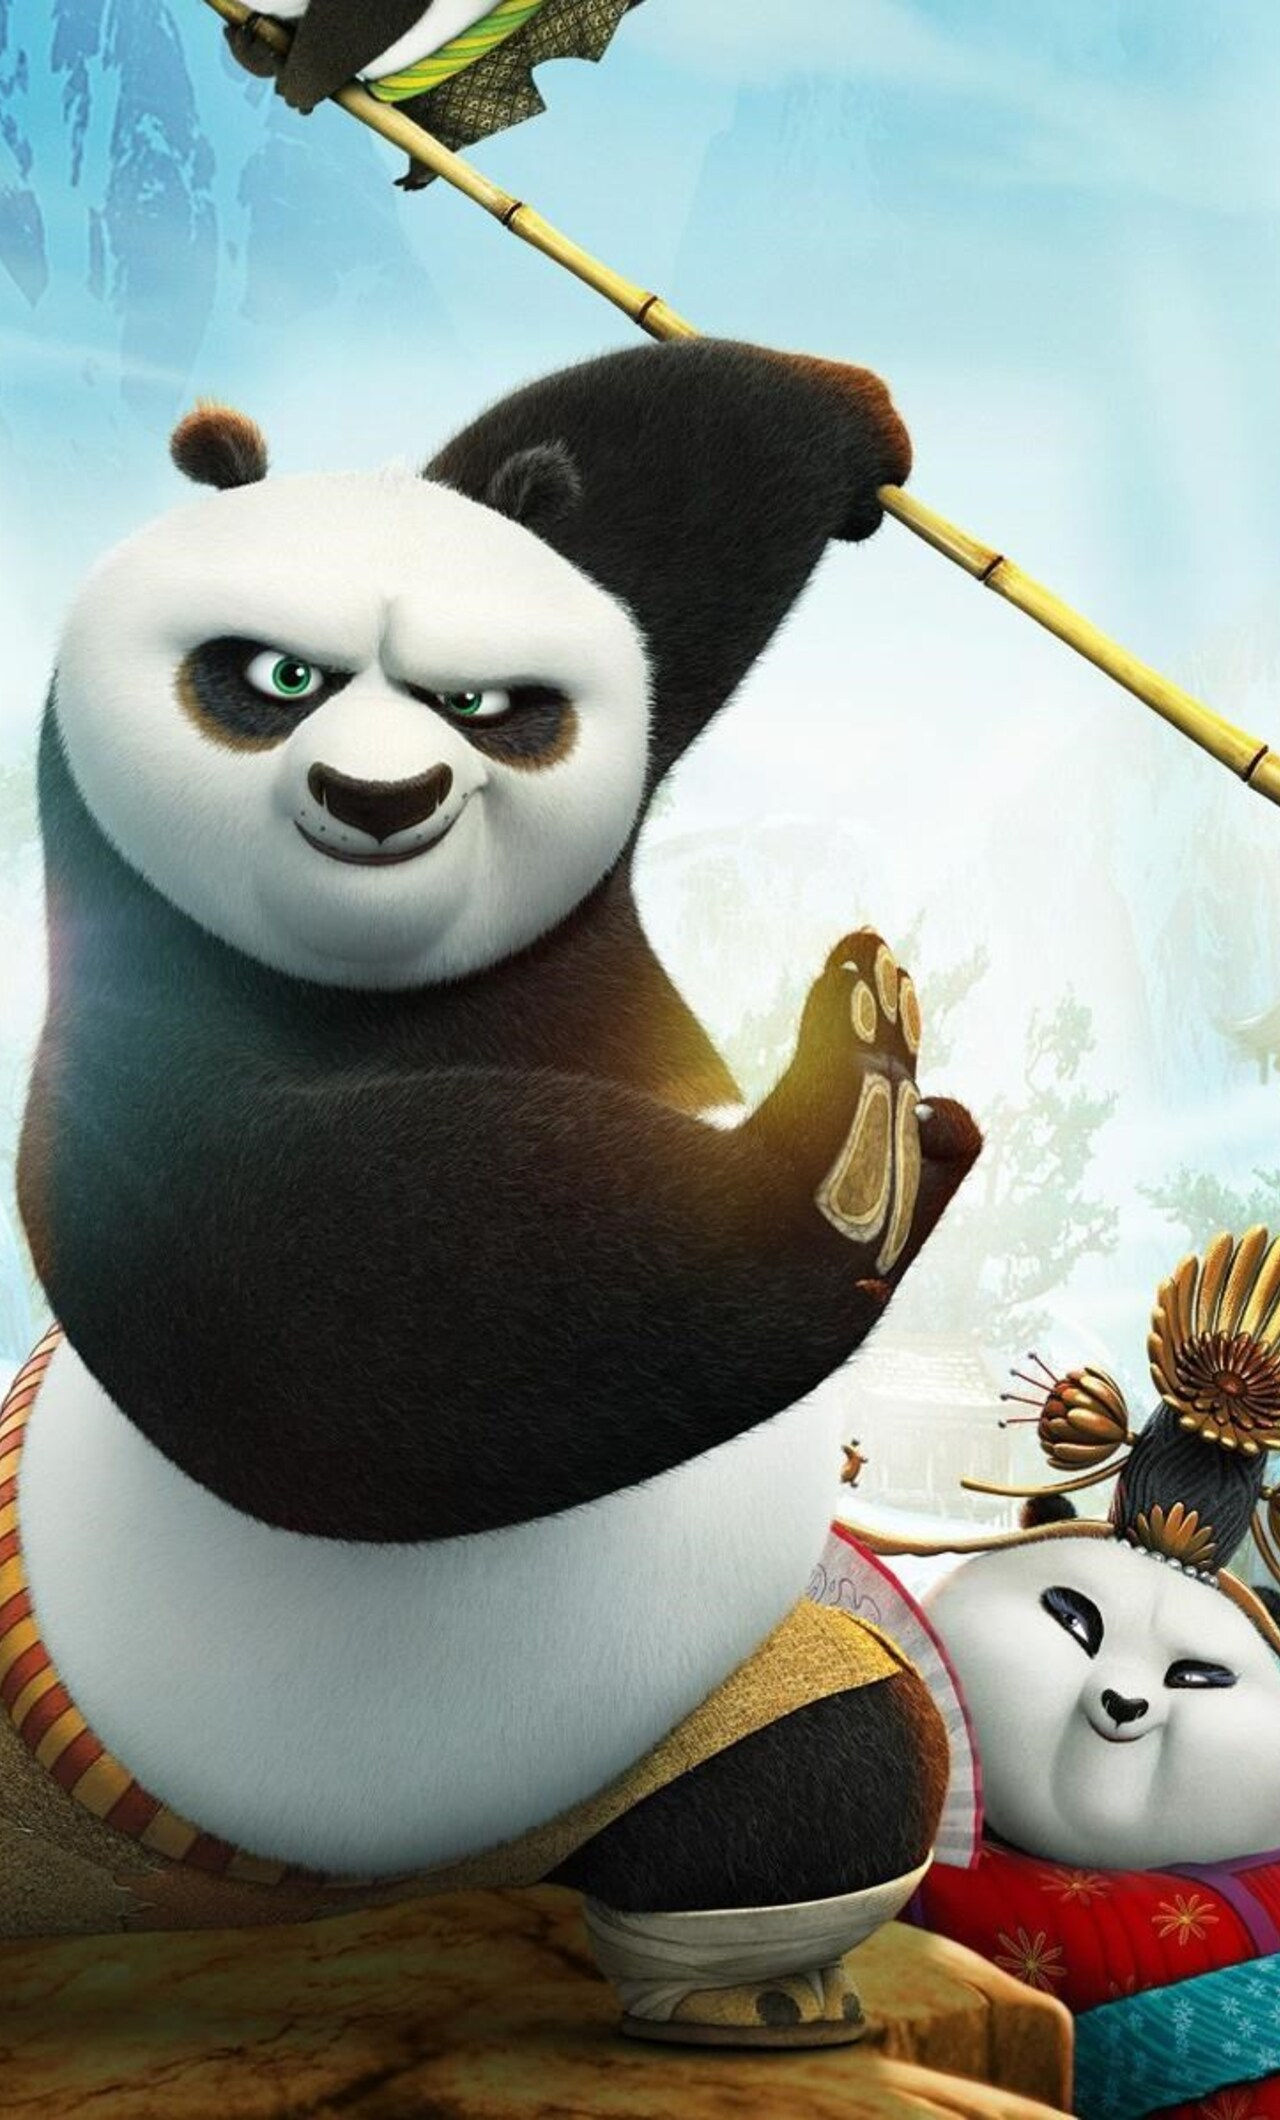 1280x2120 kung fu panda 3 movie iphone 6+ hd 4k wallpapers, images